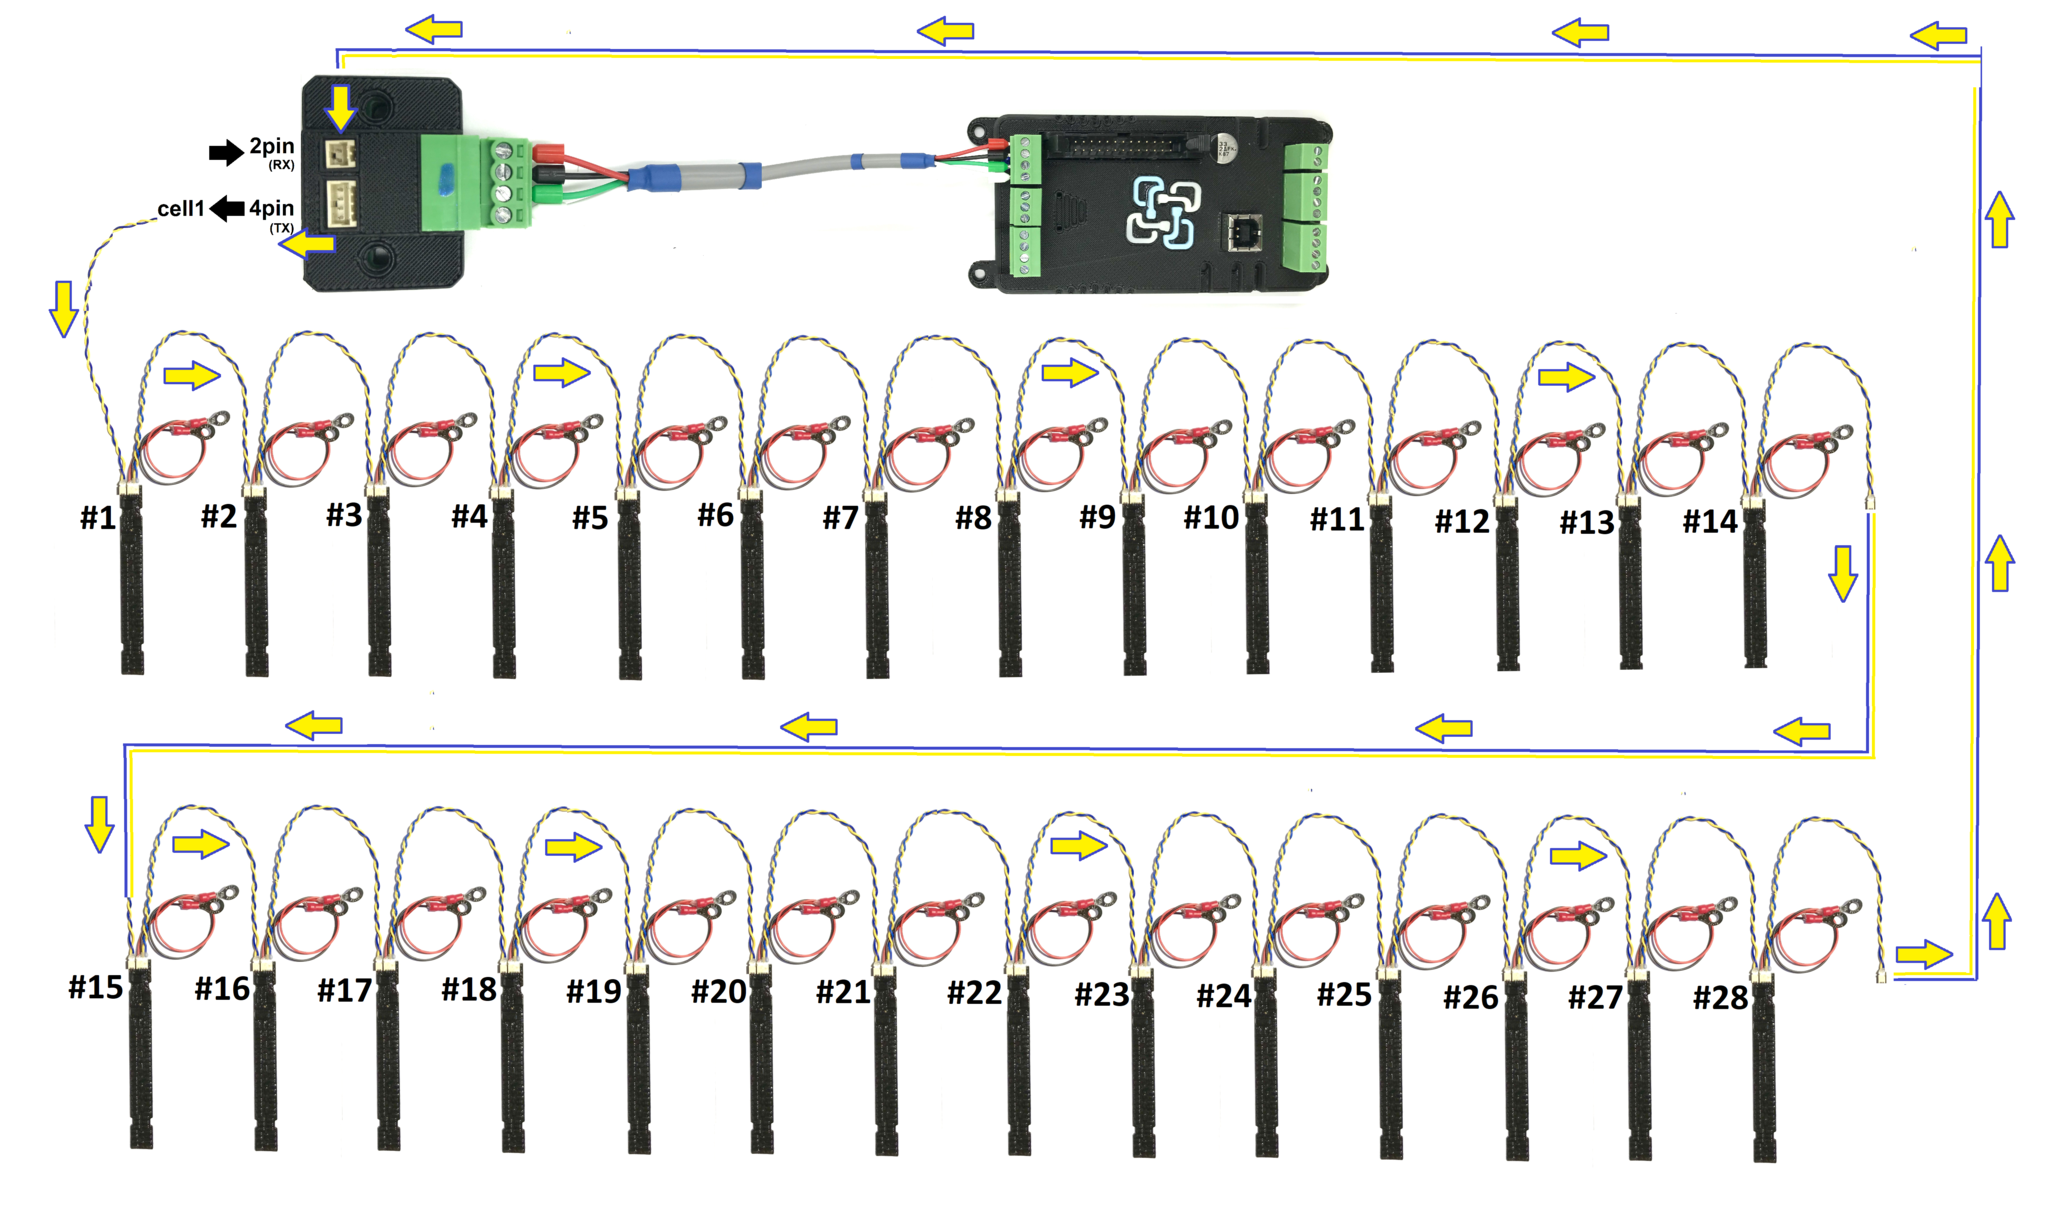 Multiple Cell Monitors Or Multi String Configuration Adding Series And Parallel Wiring Battery Bank Re Configure The Whole Pack It Is Easier To Just Keep On Linking New From Last Monitor Daisy Chain Network